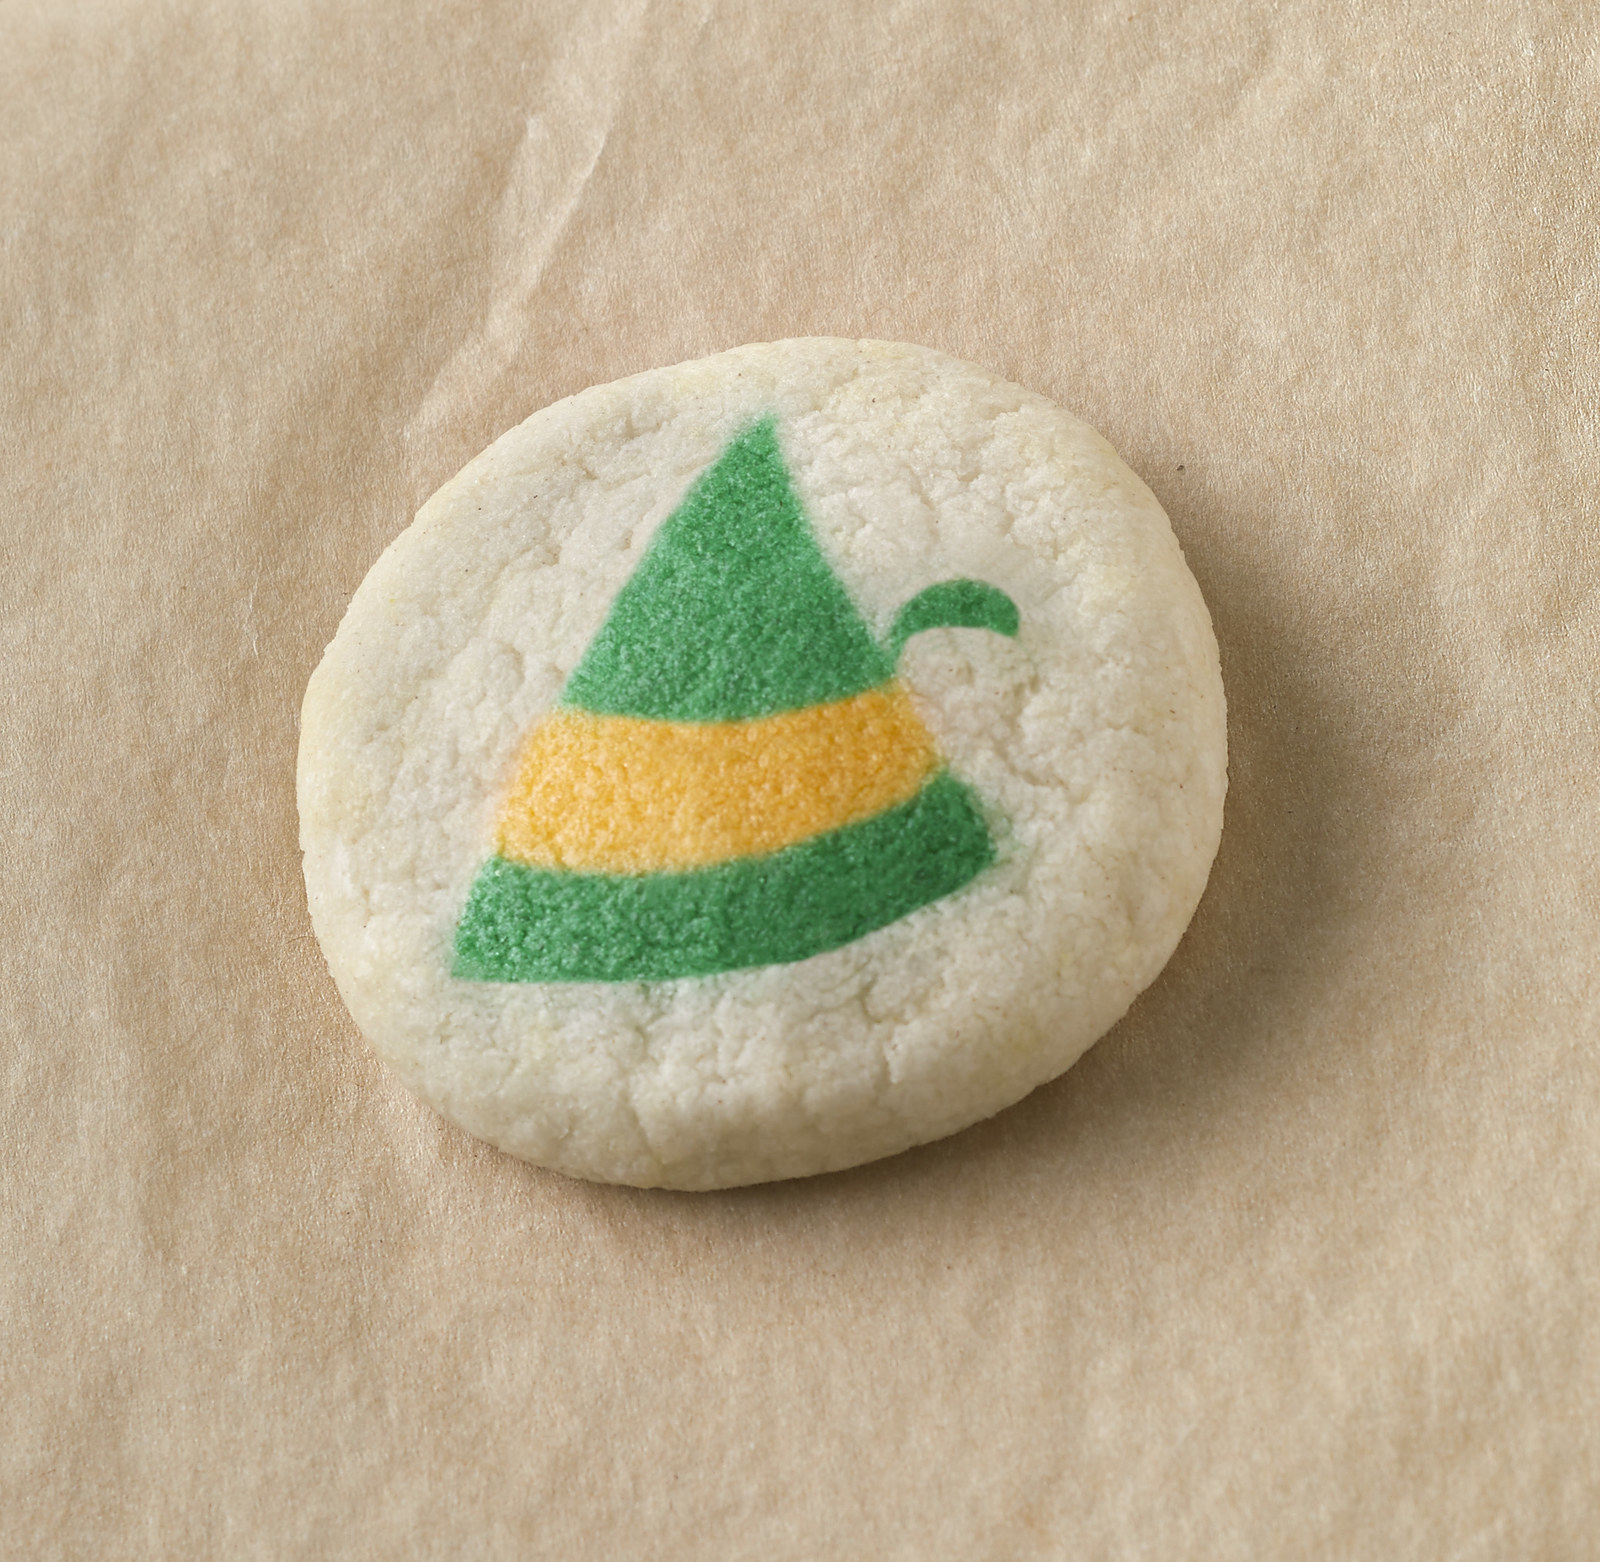 Pillsbury Elf Sugar Cookies Are A Real Thing And I Need Them Now